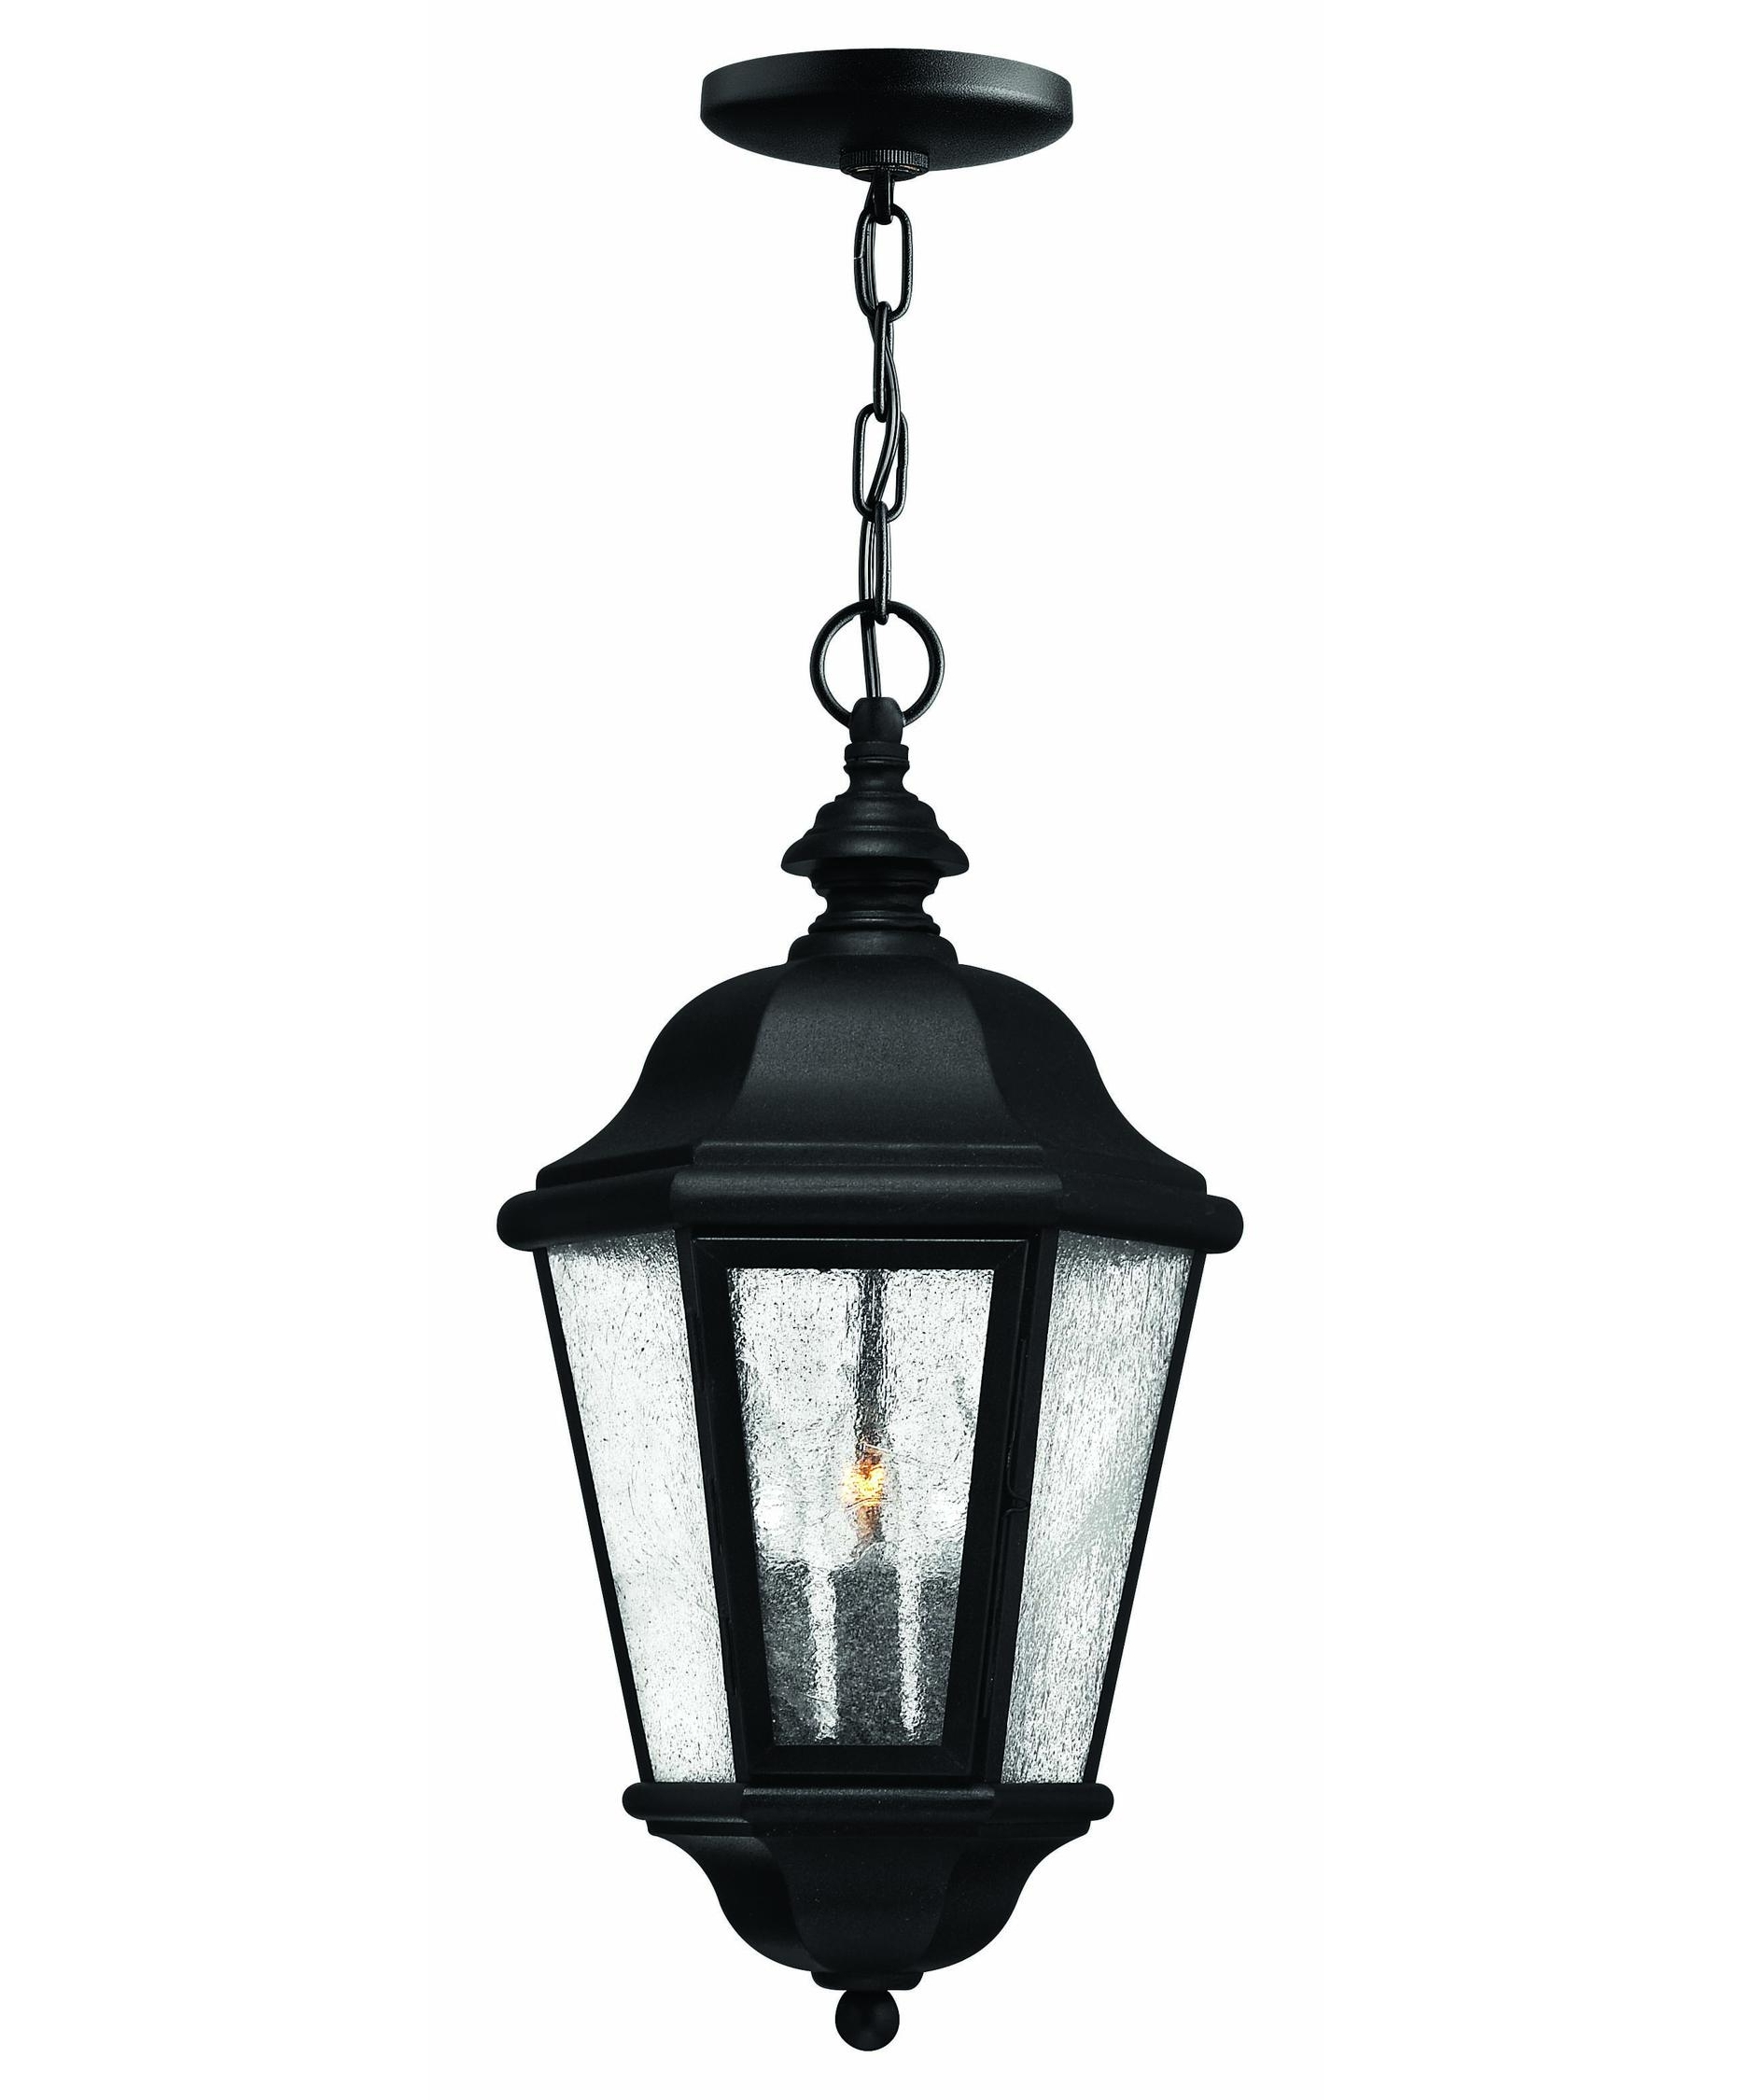 2019 Hinkley Lighting 1672 Edgewater 10 Inch Wide 3 Light Outdoor Hanging Intended For Outdoor Hanging Lantern Lights (View 1 of 20)